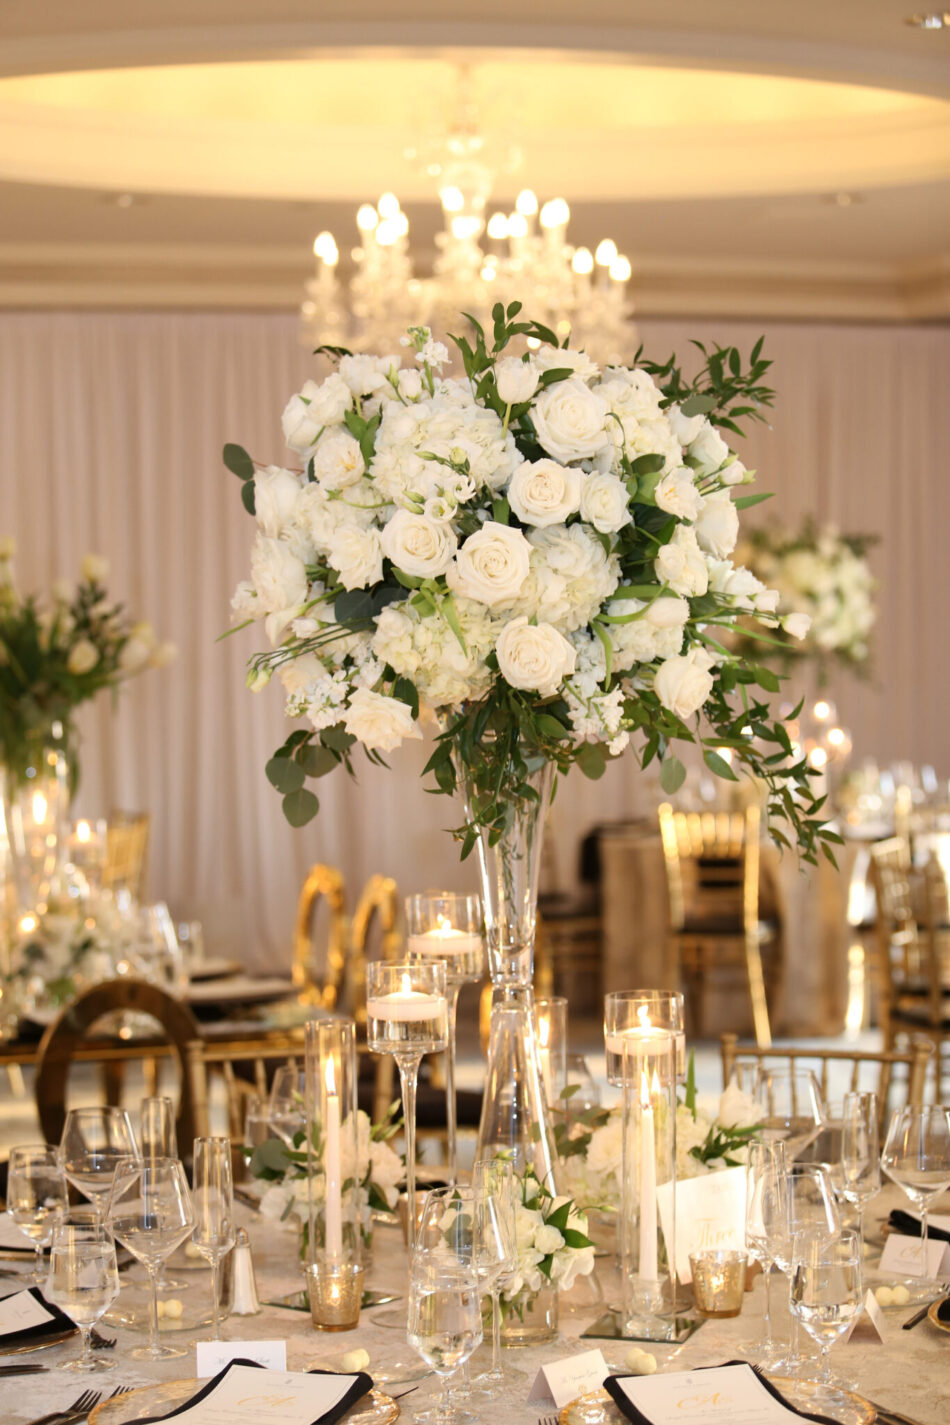 white and gold wedding, gold reception, white reception florals, ethereal oceanfront wedding, floral design, florist, wedding florist, wedding flowers, orange county weddings, orange county wedding florist, orange county florist, orange county floral design, flowers by cina